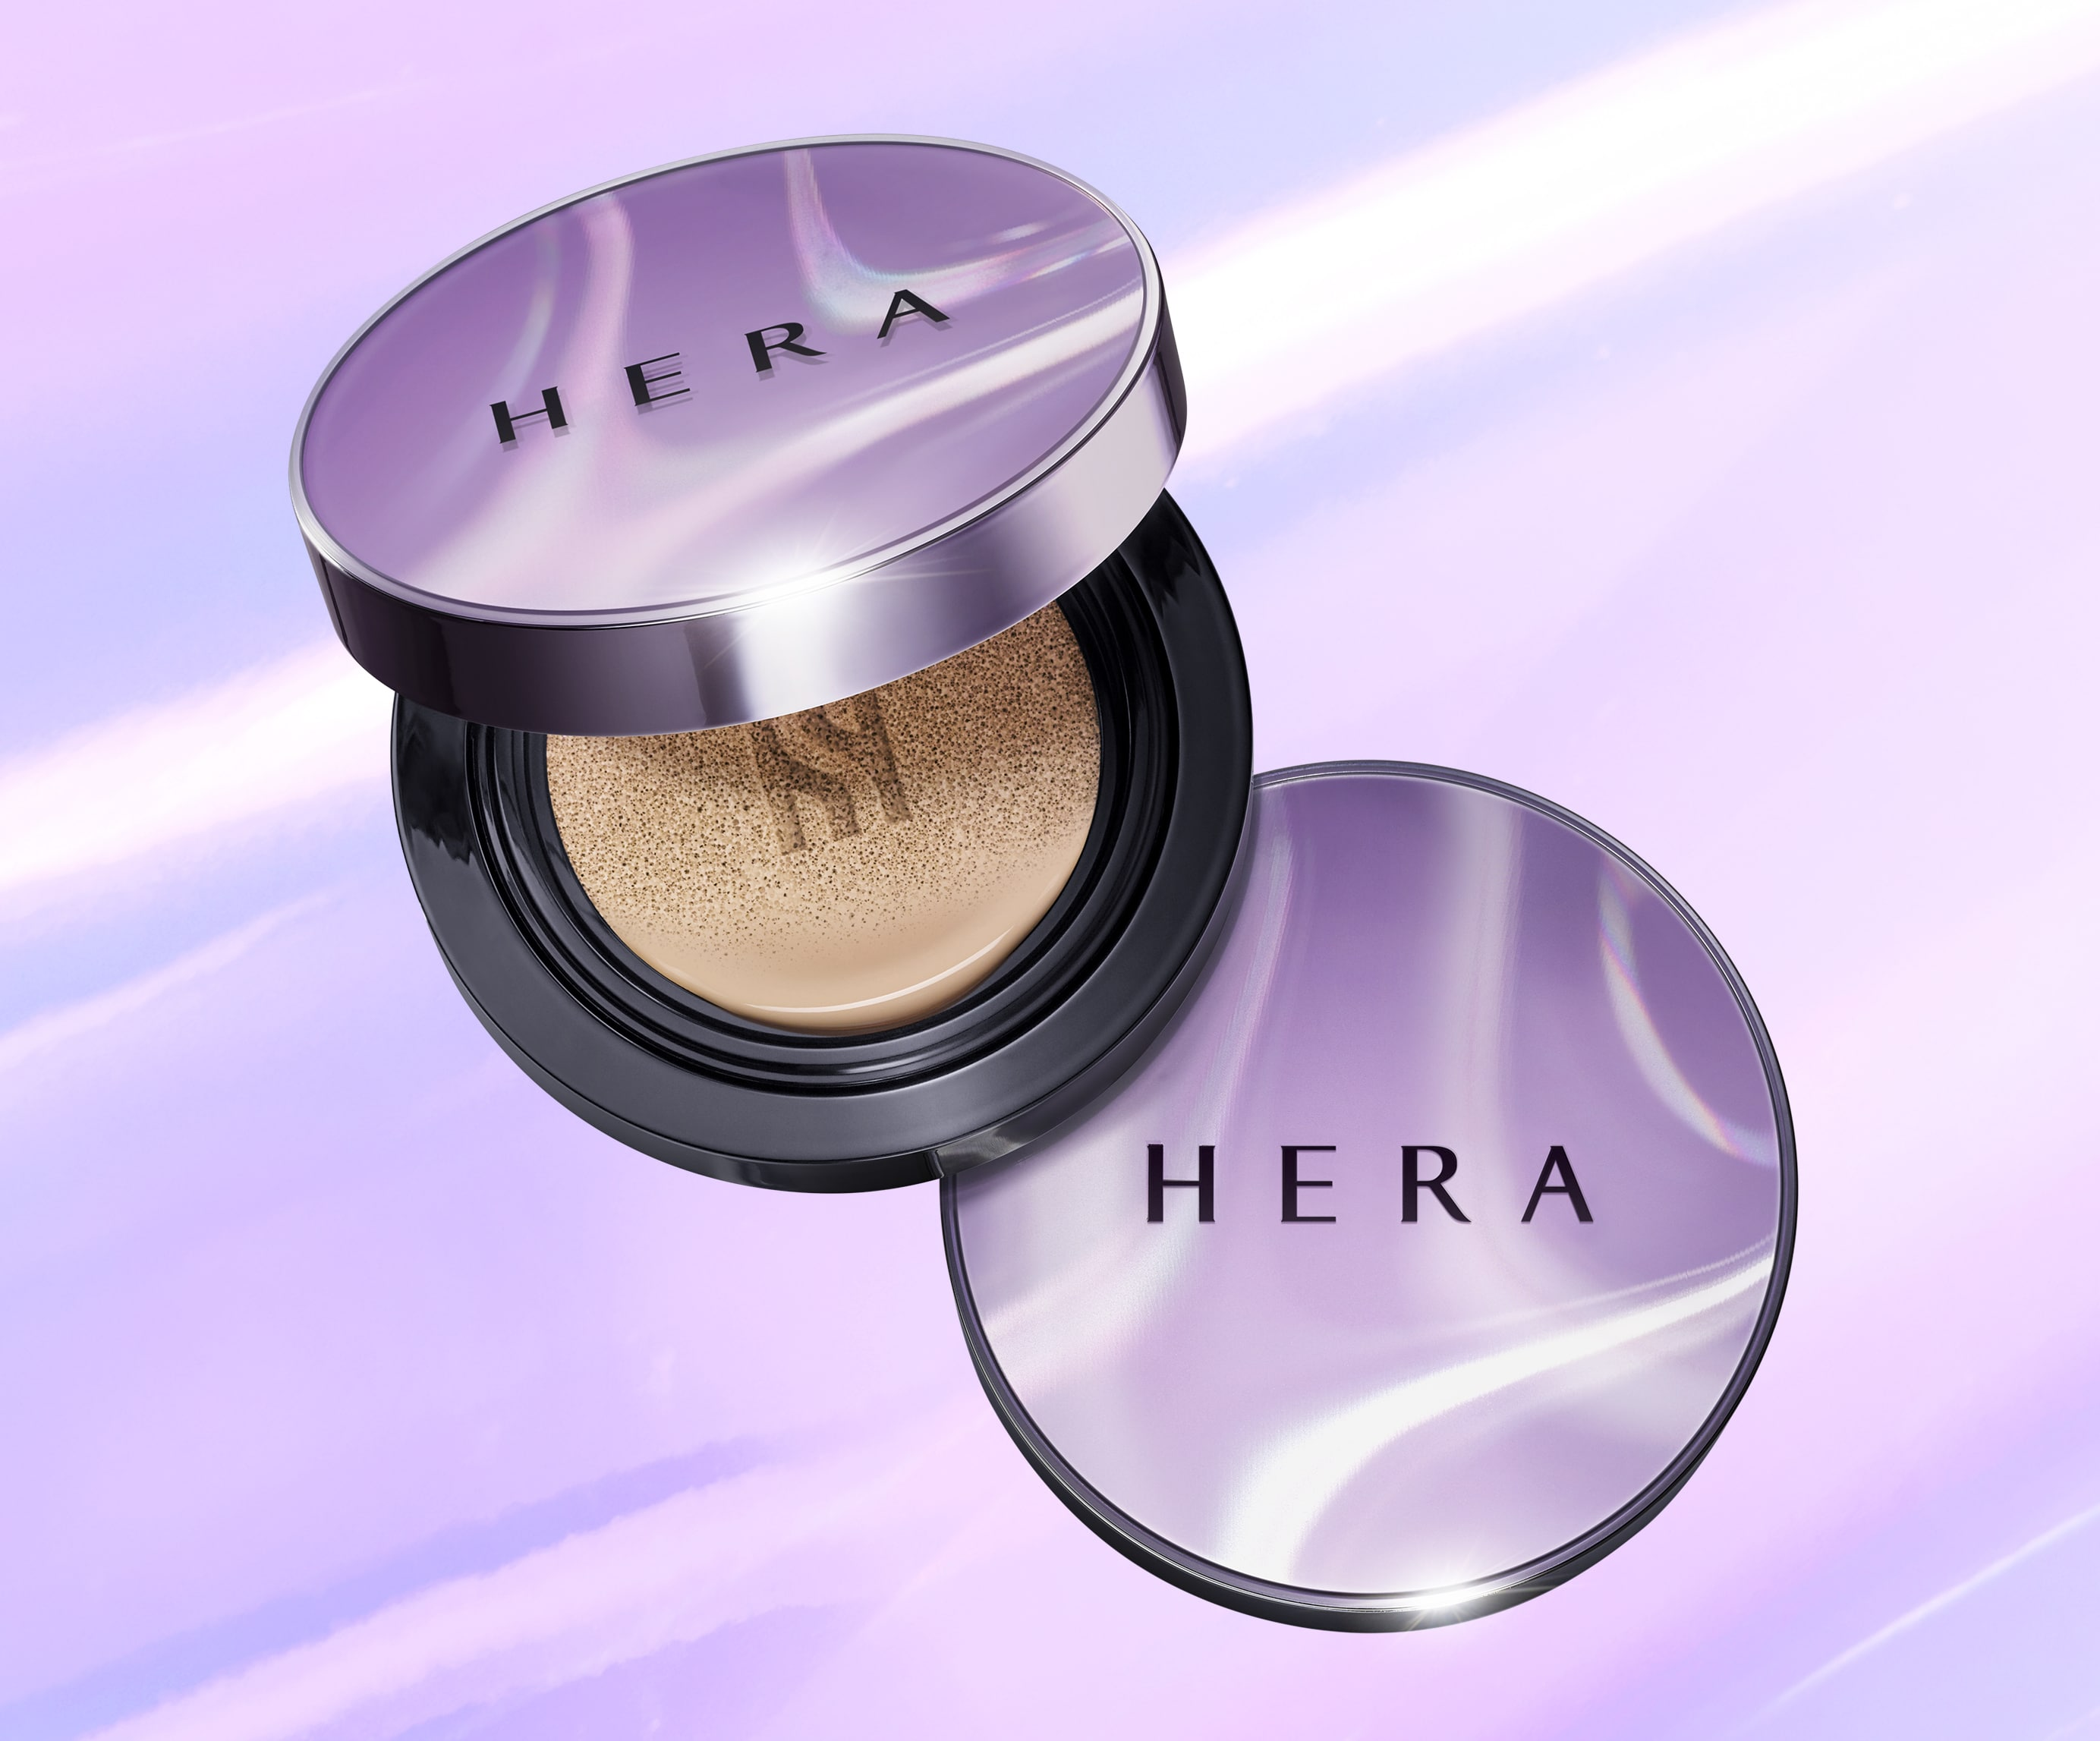 Get A K Star Glow From Every Angle With Hera S Hot New Uv Mist Cushion